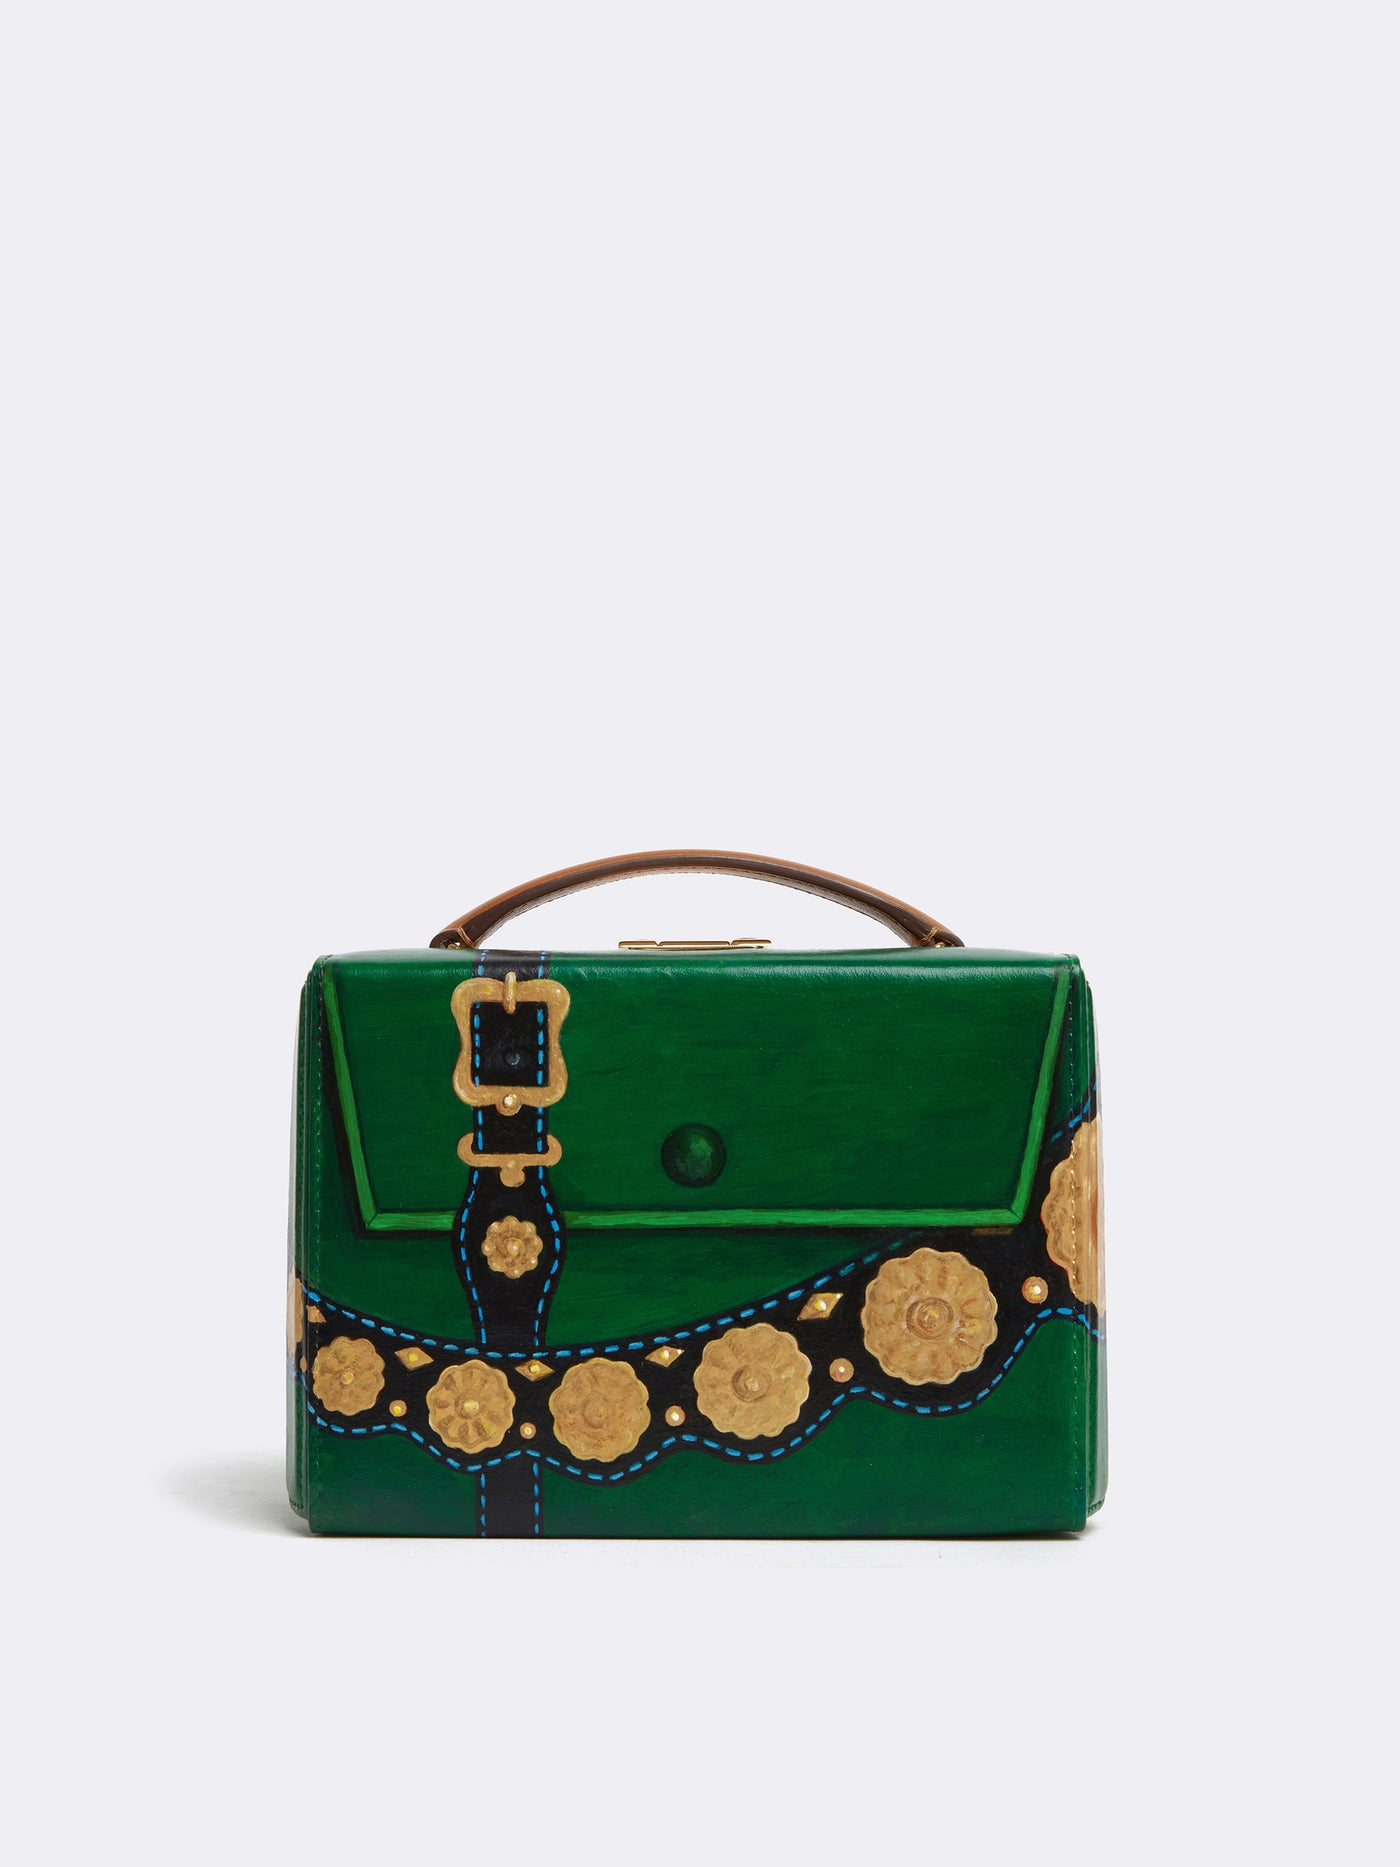 Sophie Matisse x Mark Cross Grace Small Leather Box Bag Smooth Calf Luggage / Yellow & Green Front